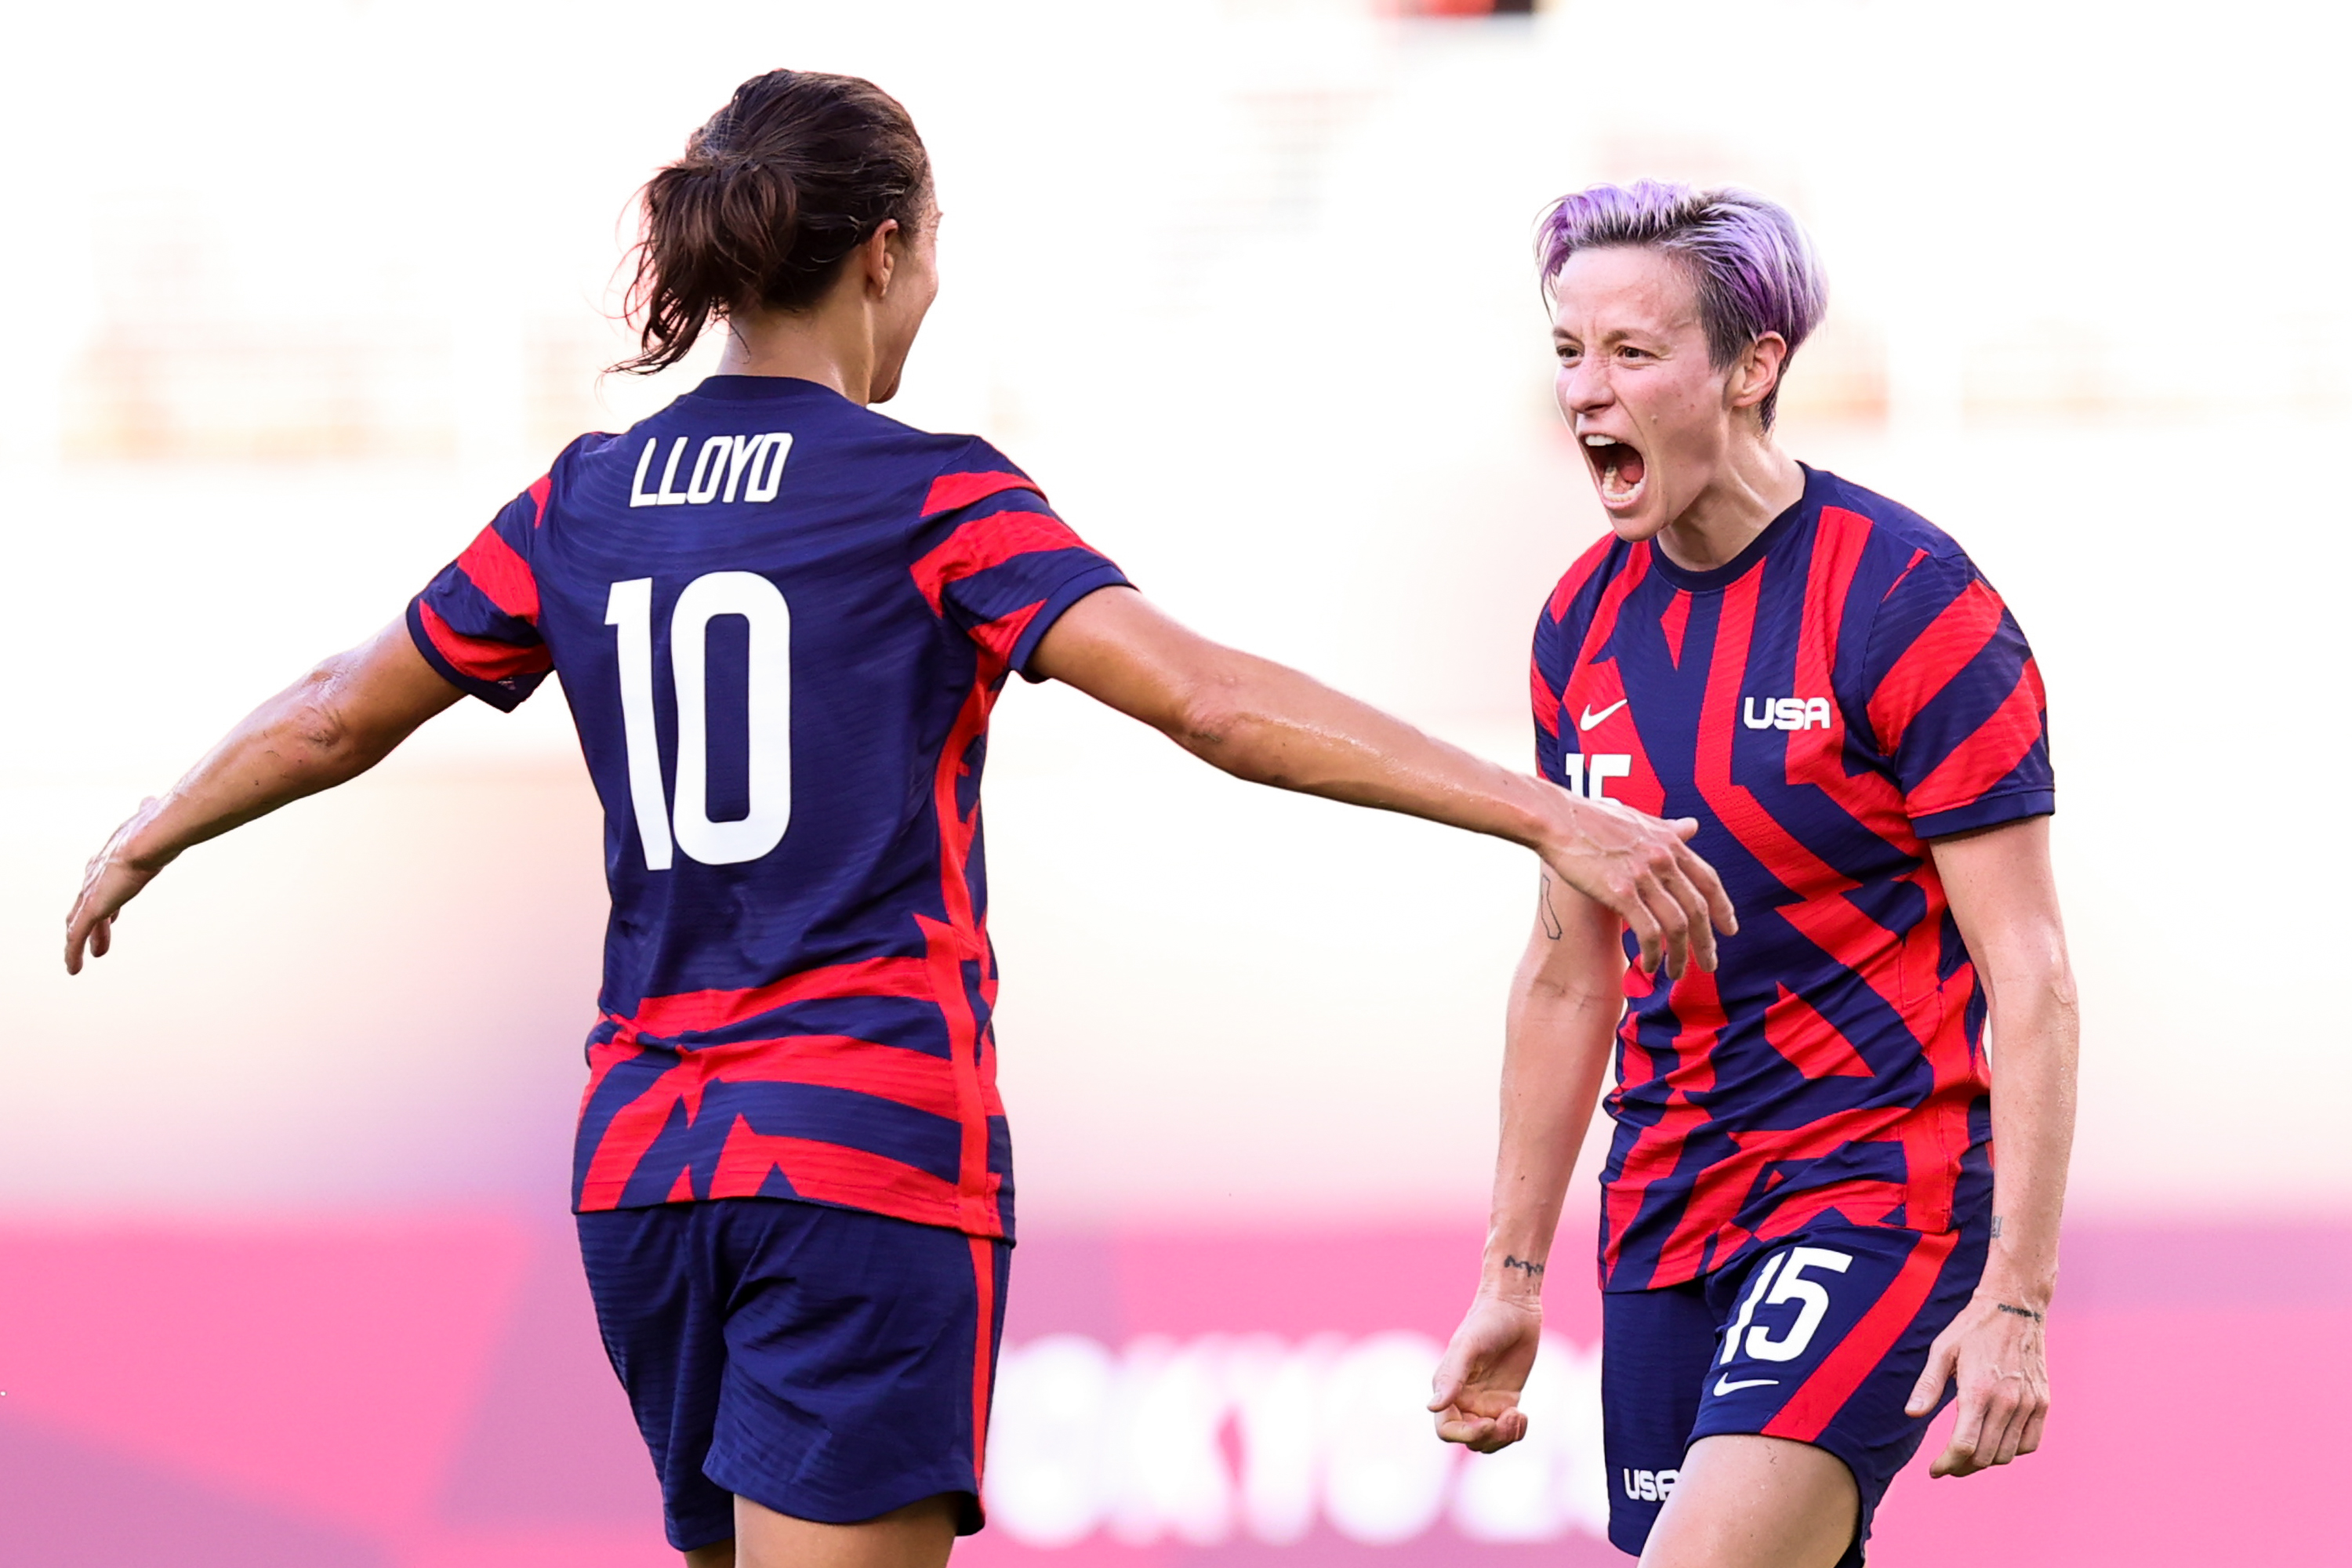 Carli Lloyd and Megan Rapinoe scored all four goals for the USWNT in their Olympic bronze medal match victory over Australia. (Photo by Zhizhao Wu/Getty Images)